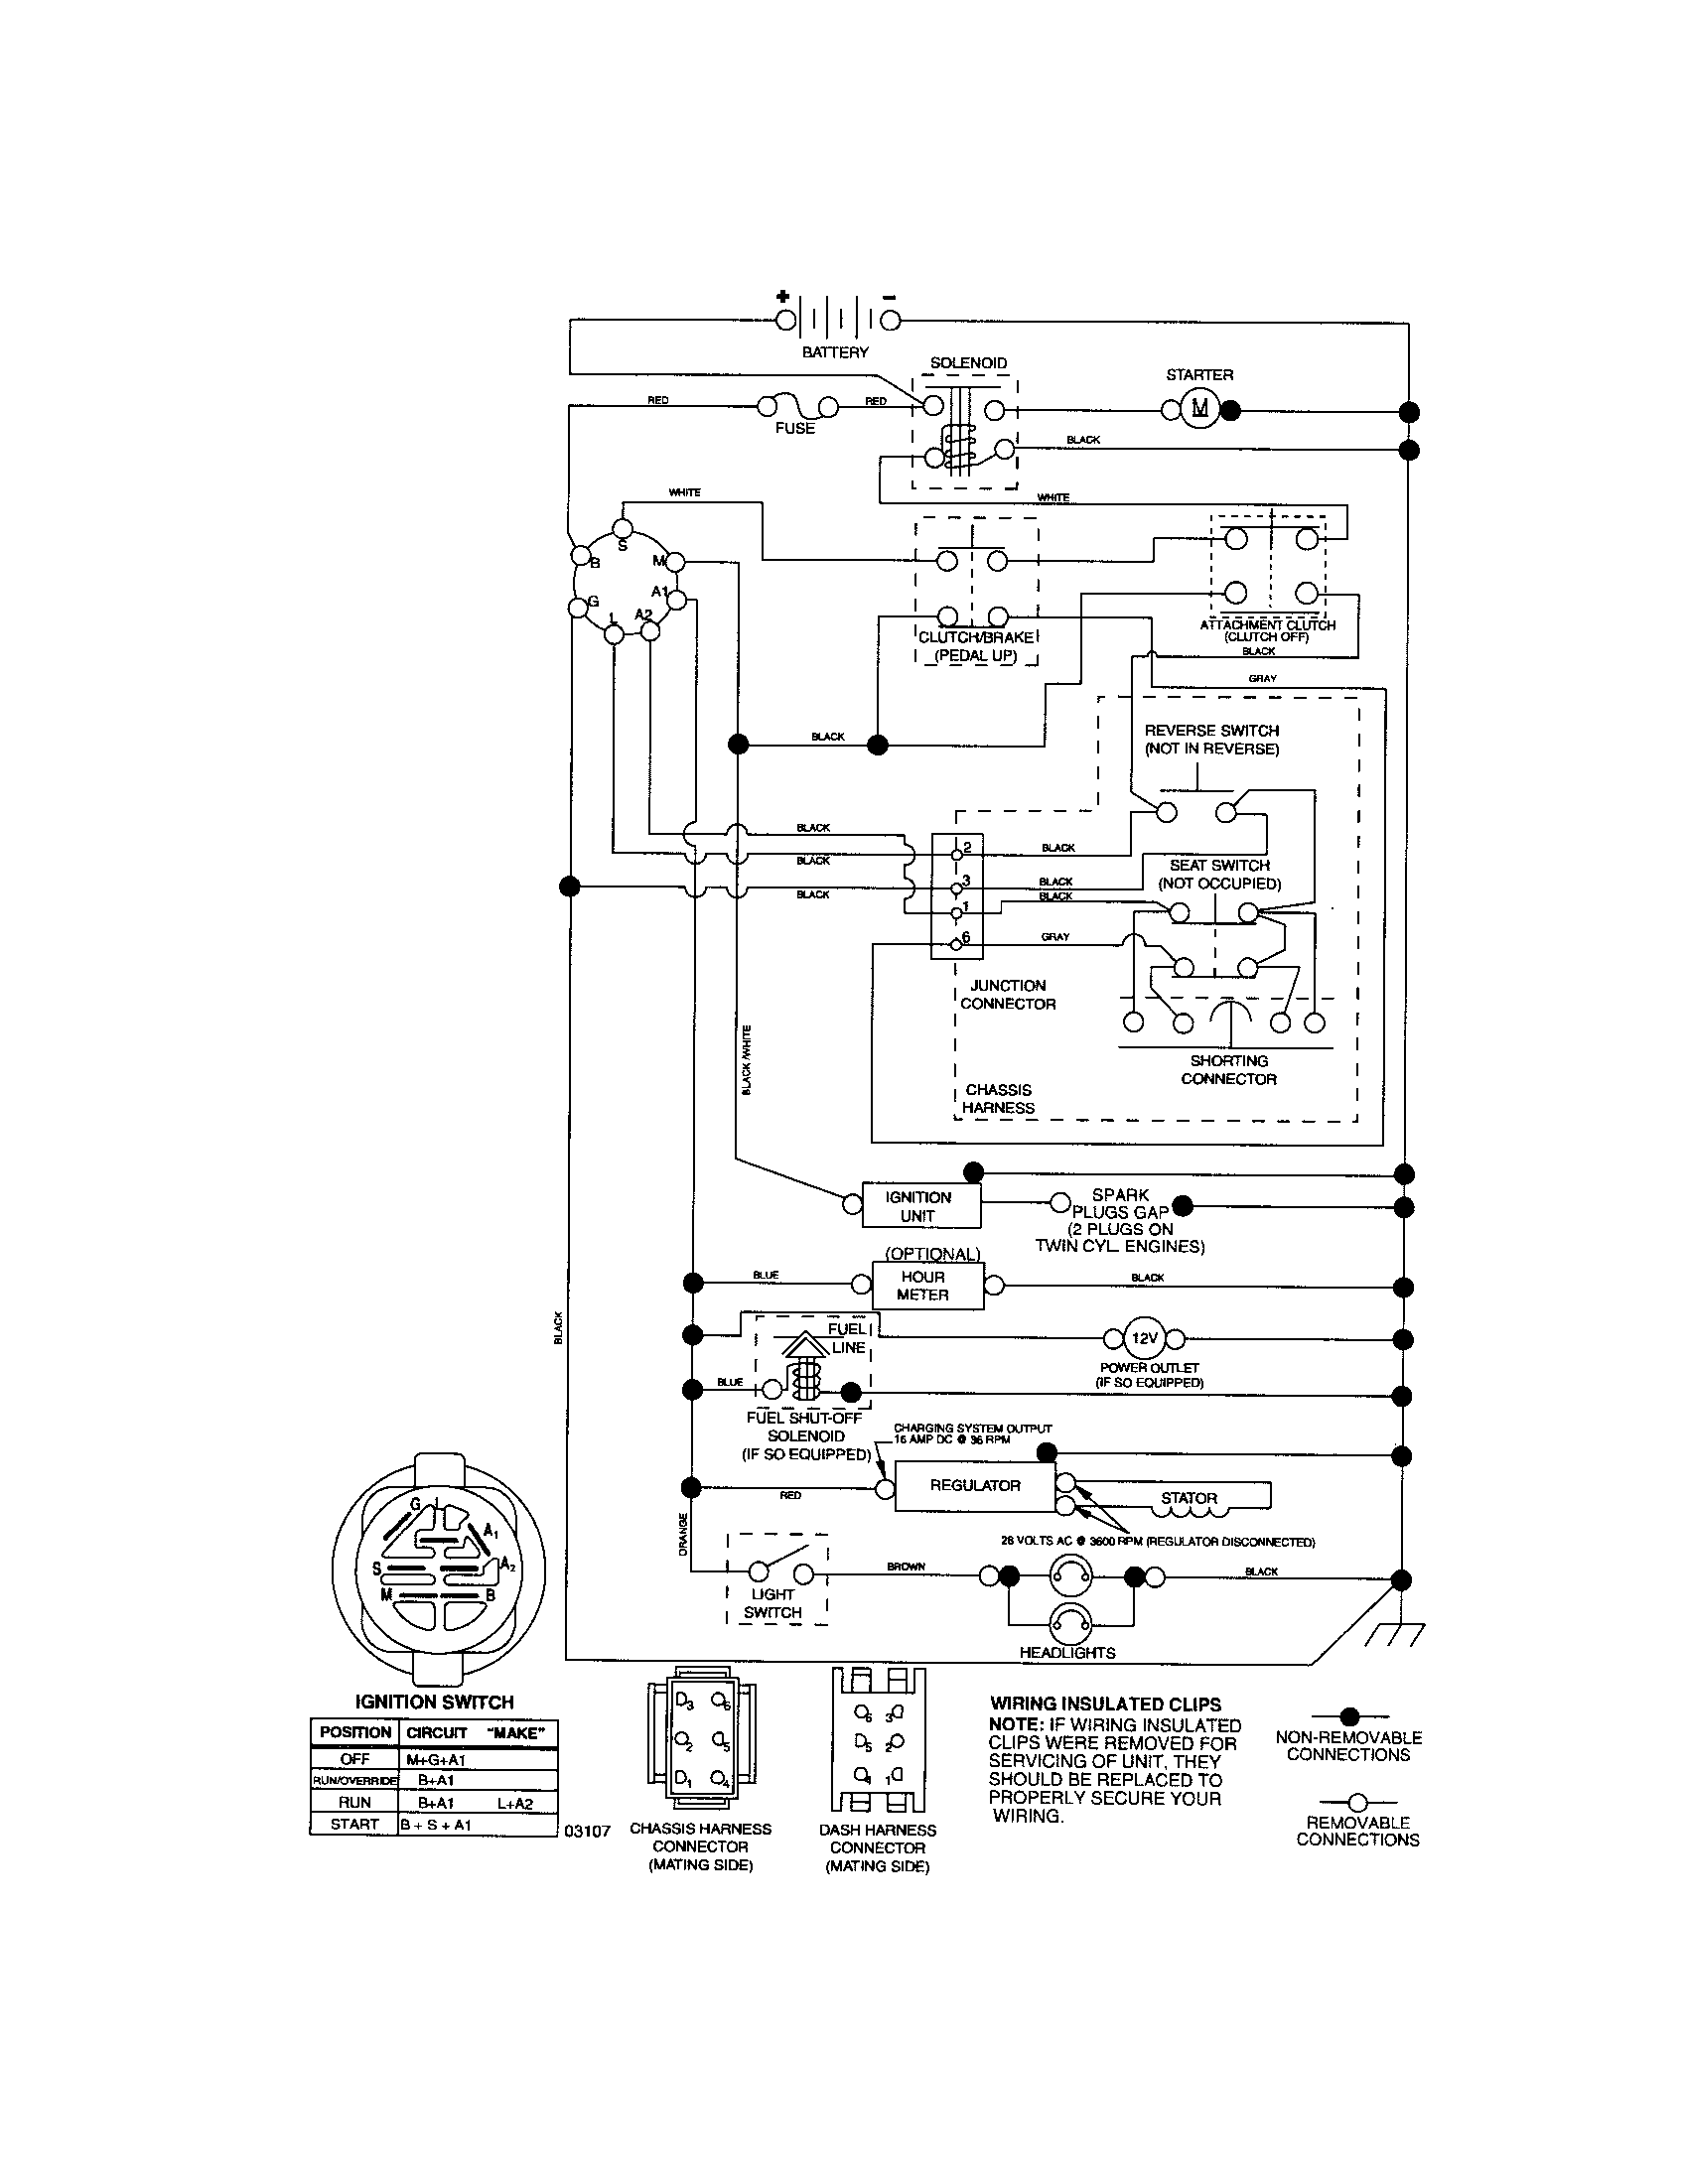 6af5f1447fd13c8443376822ddc1e105 craftsman riding mower electrical diagram wiring diagram Craftsman Lawn Mower Won't Start at gsmx.co